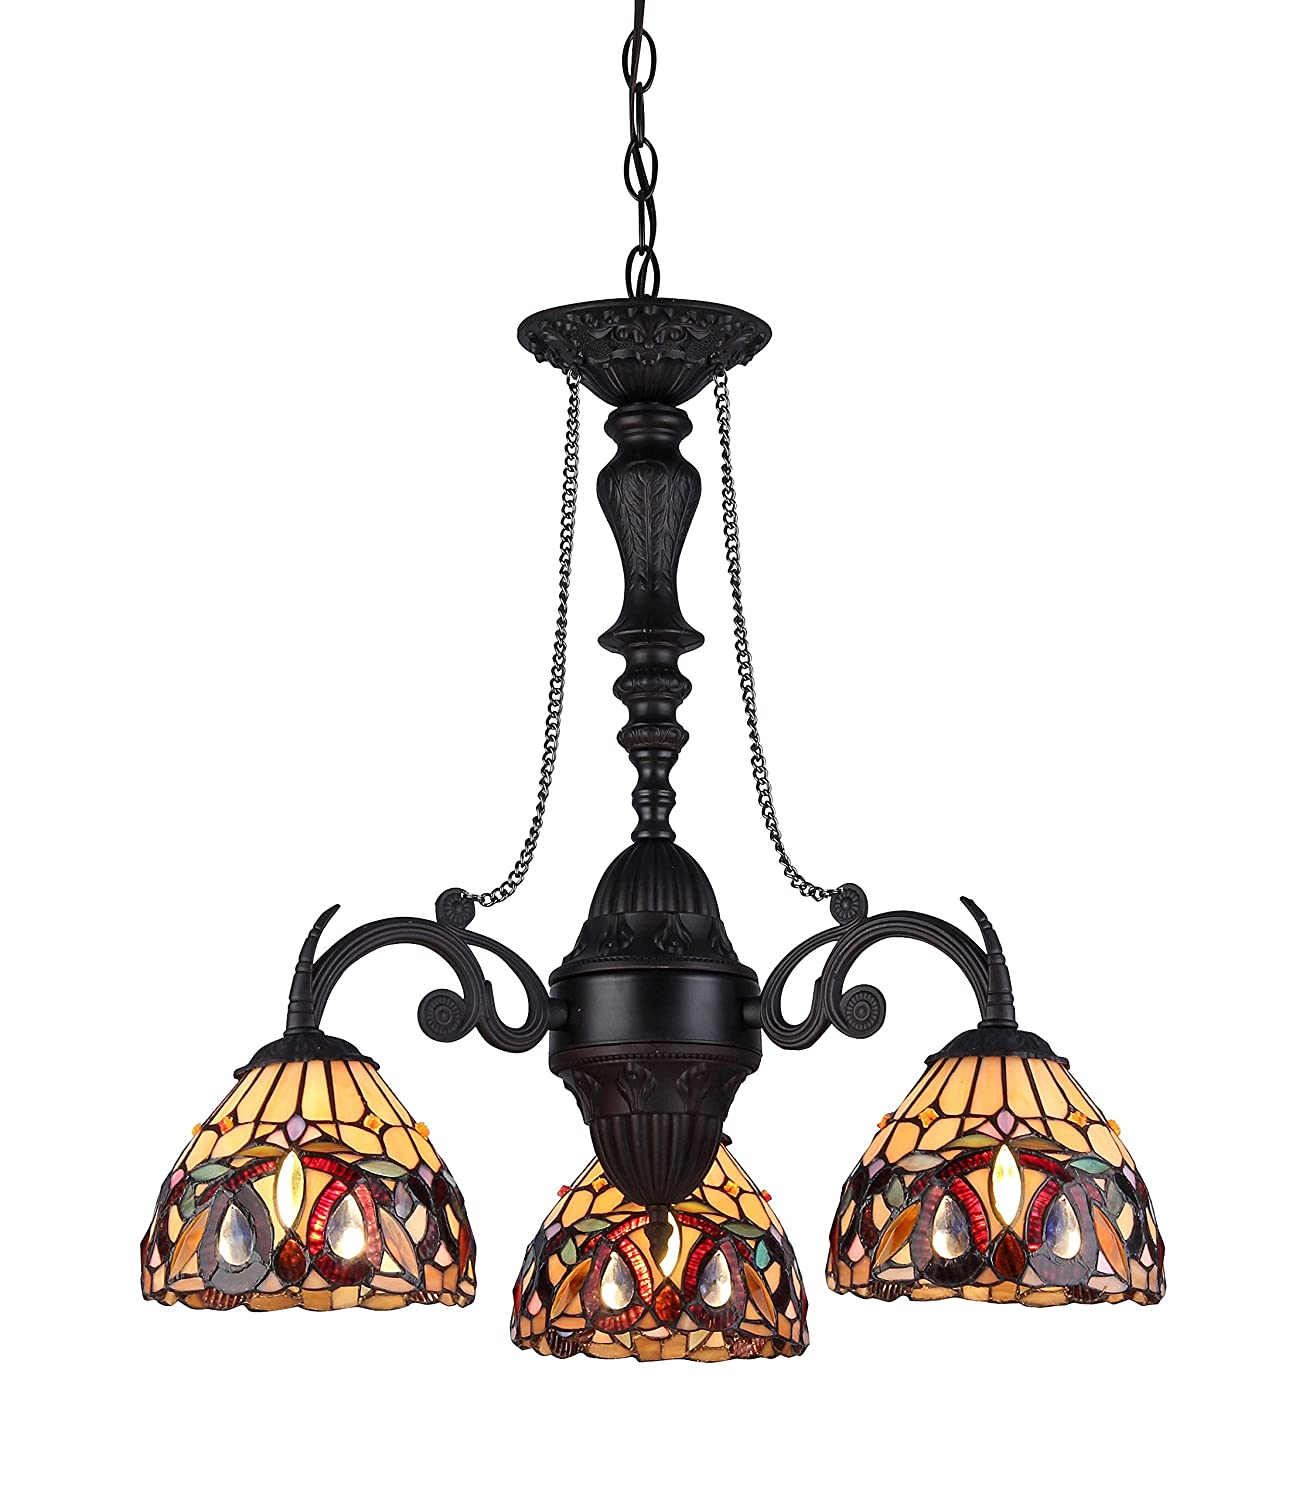 Chloe lighting ch33353vr21 dc3 serenity tiffany style victorian 3 chloe lighting ch33353vr21 dc3 serenity tiffany style victorian 3 light mini chandelier with 205 inch width amazon aloadofball Gallery